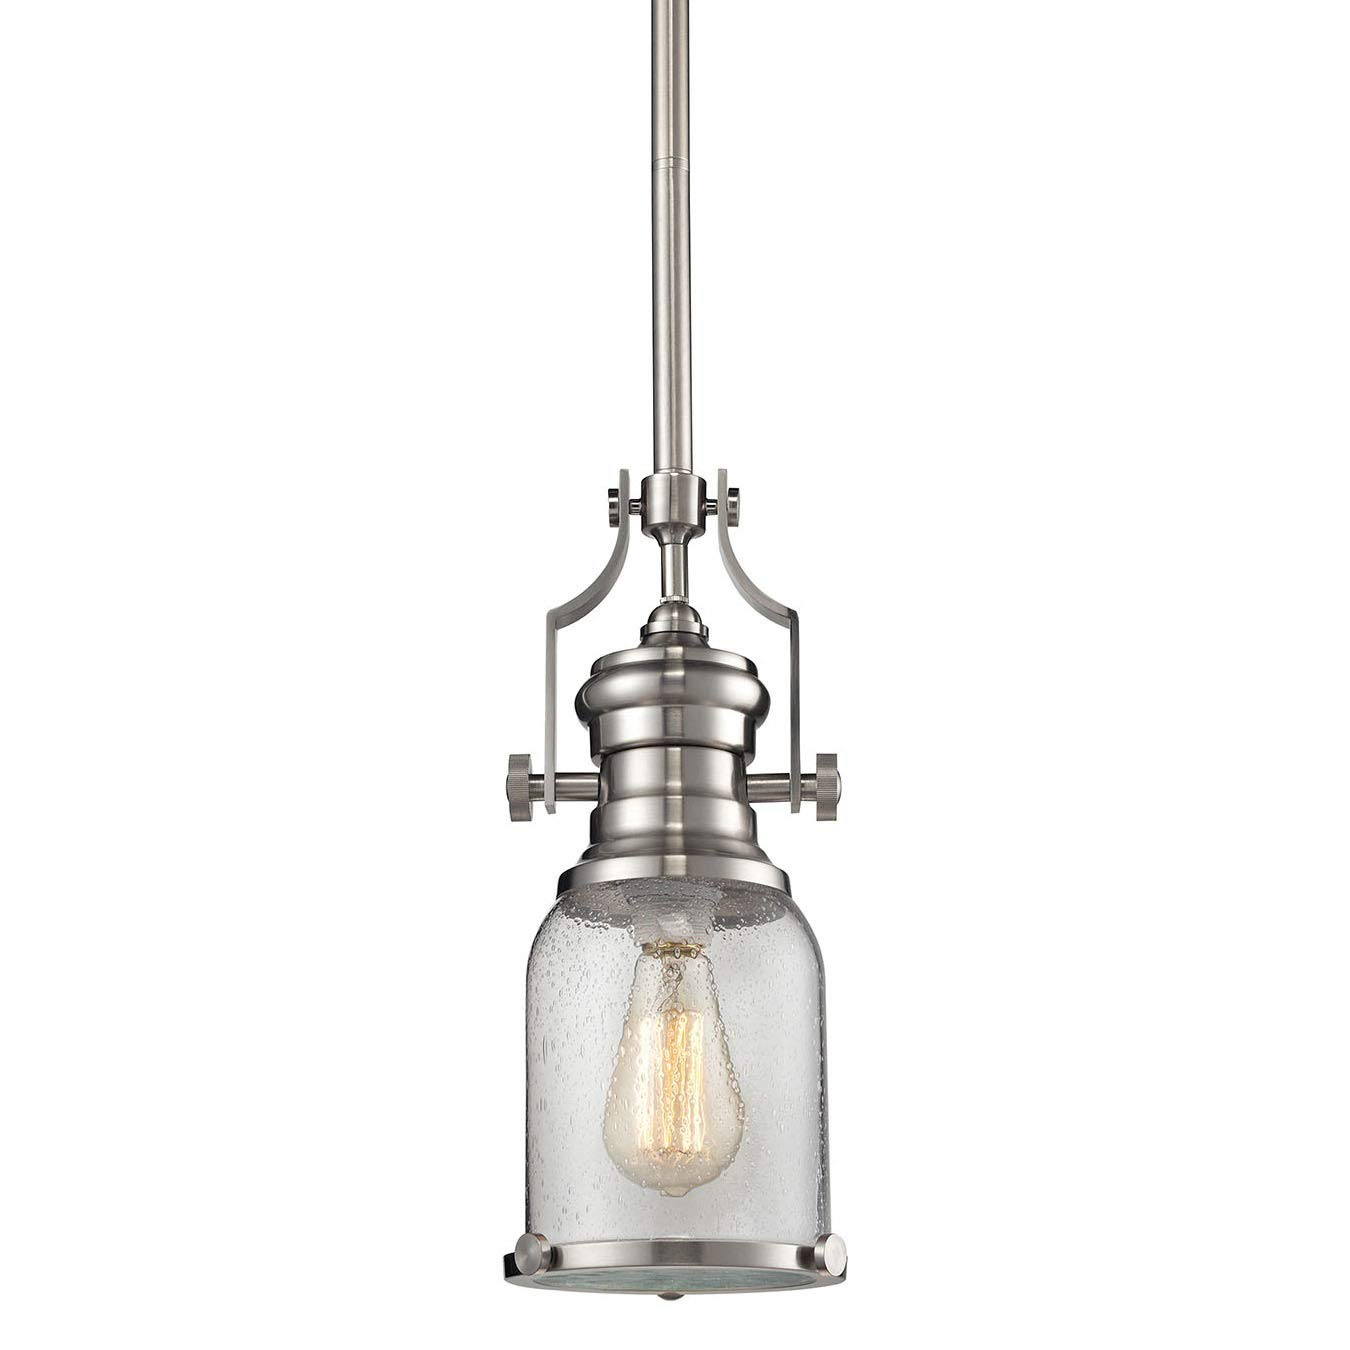 Elk Lighting 67742-1 Ceiling-Pendant-fixtures Nickel